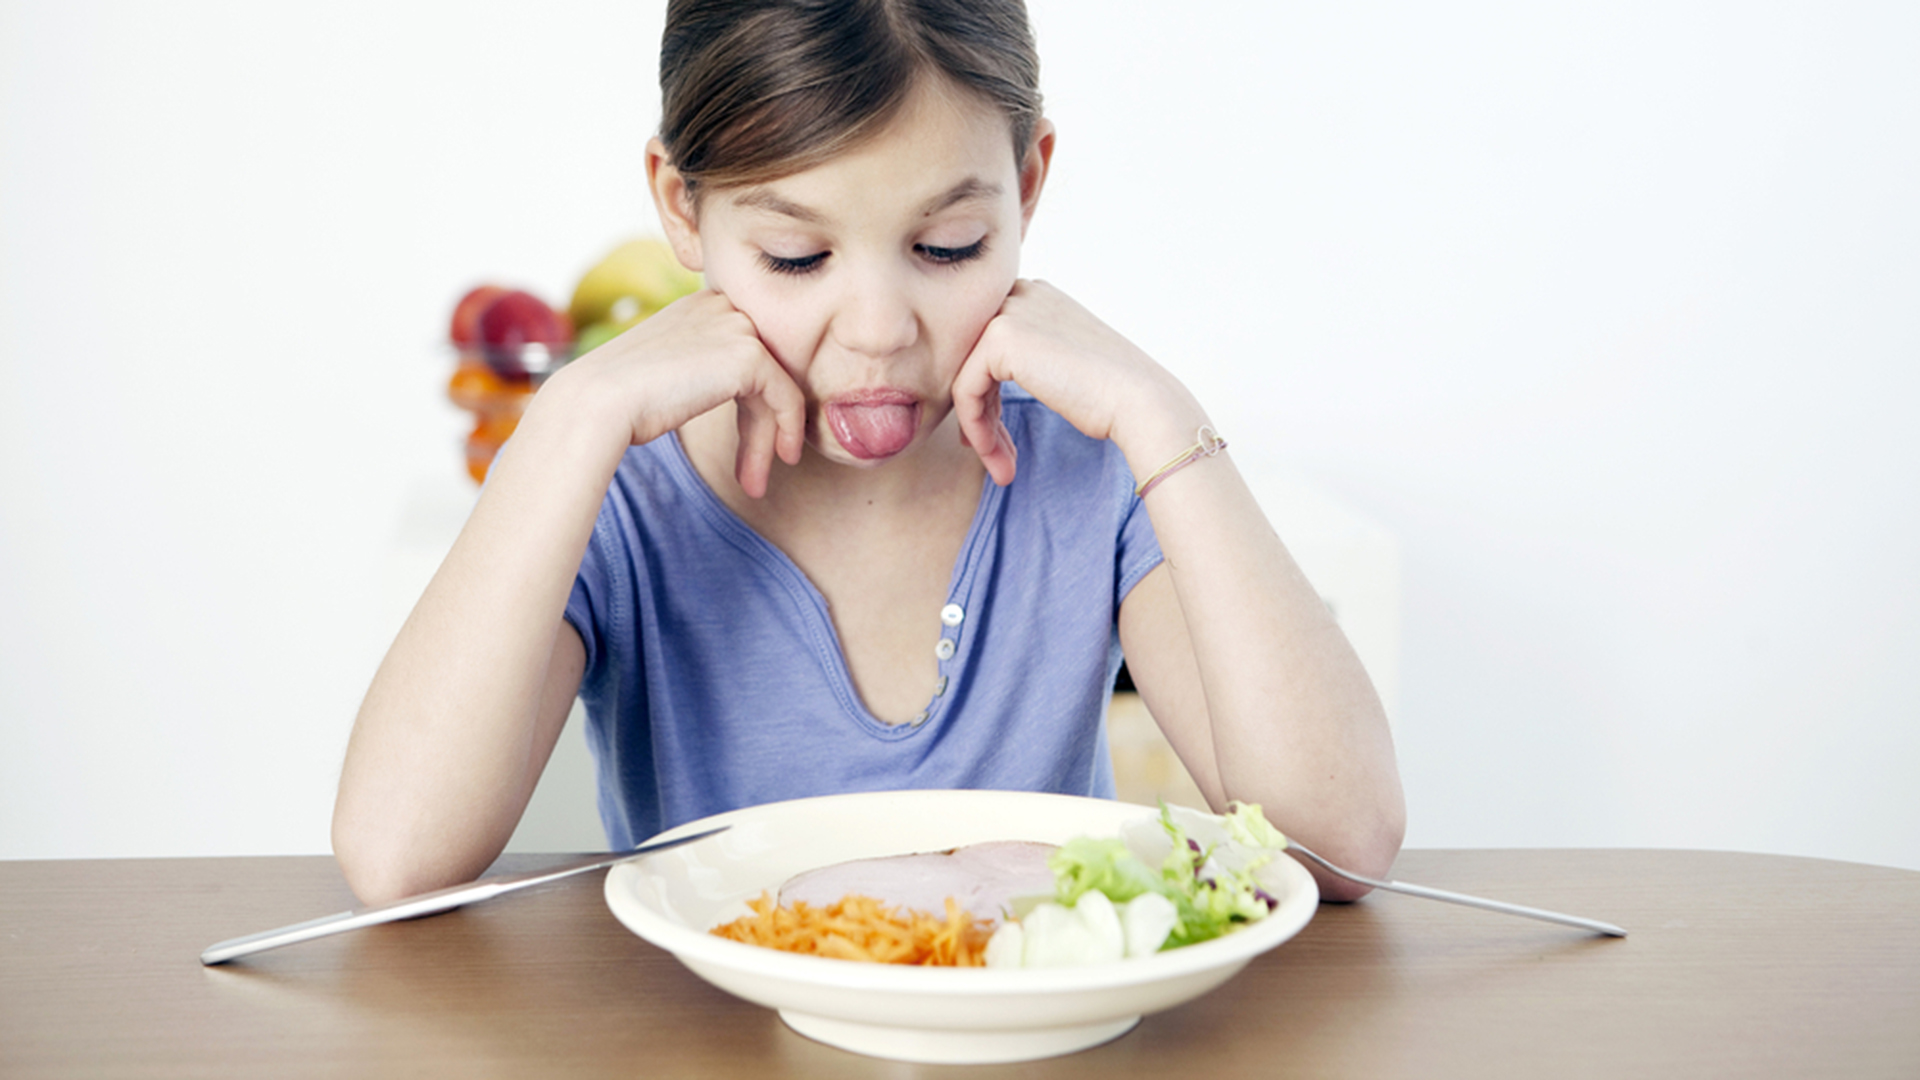 Nutrition: 20 Worst Breakfast Foods To Feed Your Kids